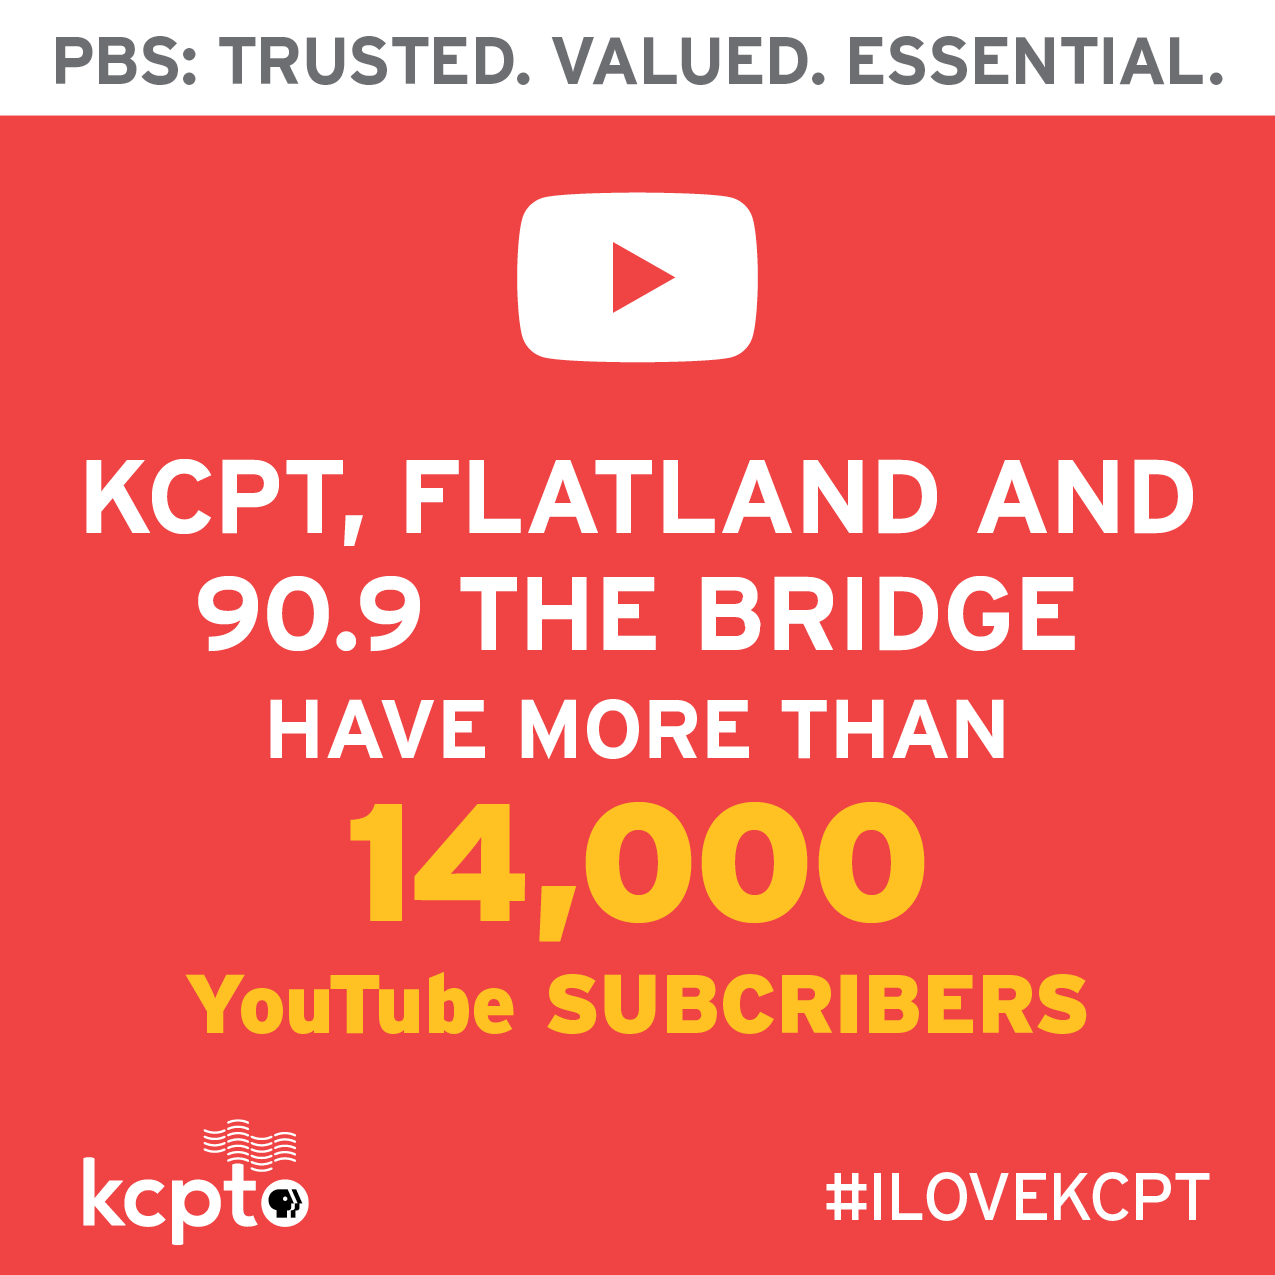 KCPT, Flatland and 90.9 the Bridge have over 14 thousand YouTube subscribers.